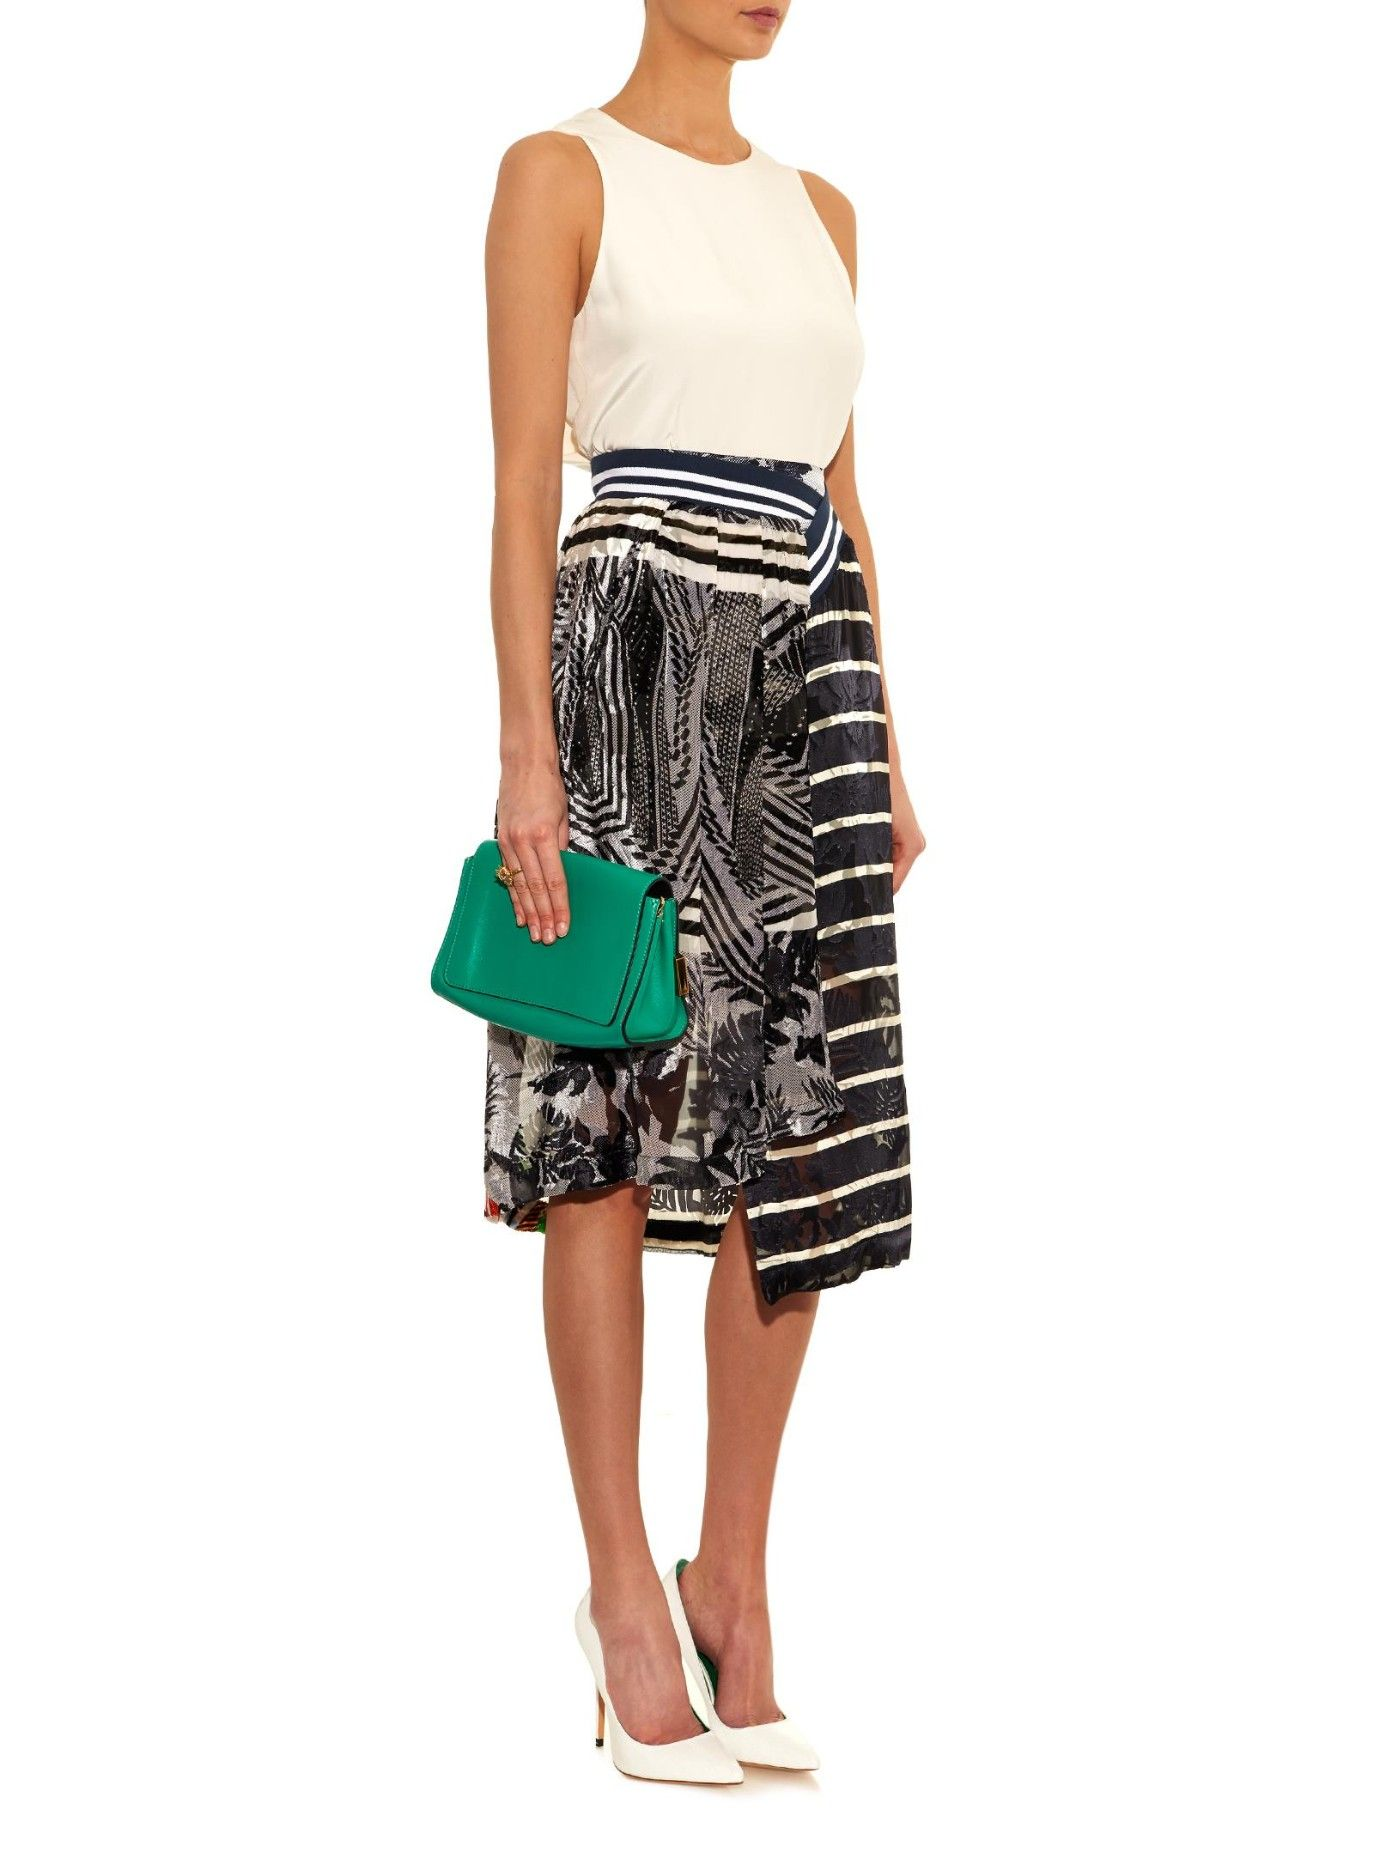 Spin floral and striped devoré silk skirt | Preen By Thornton Bregazzi | MATCHESFASHION.COM AU